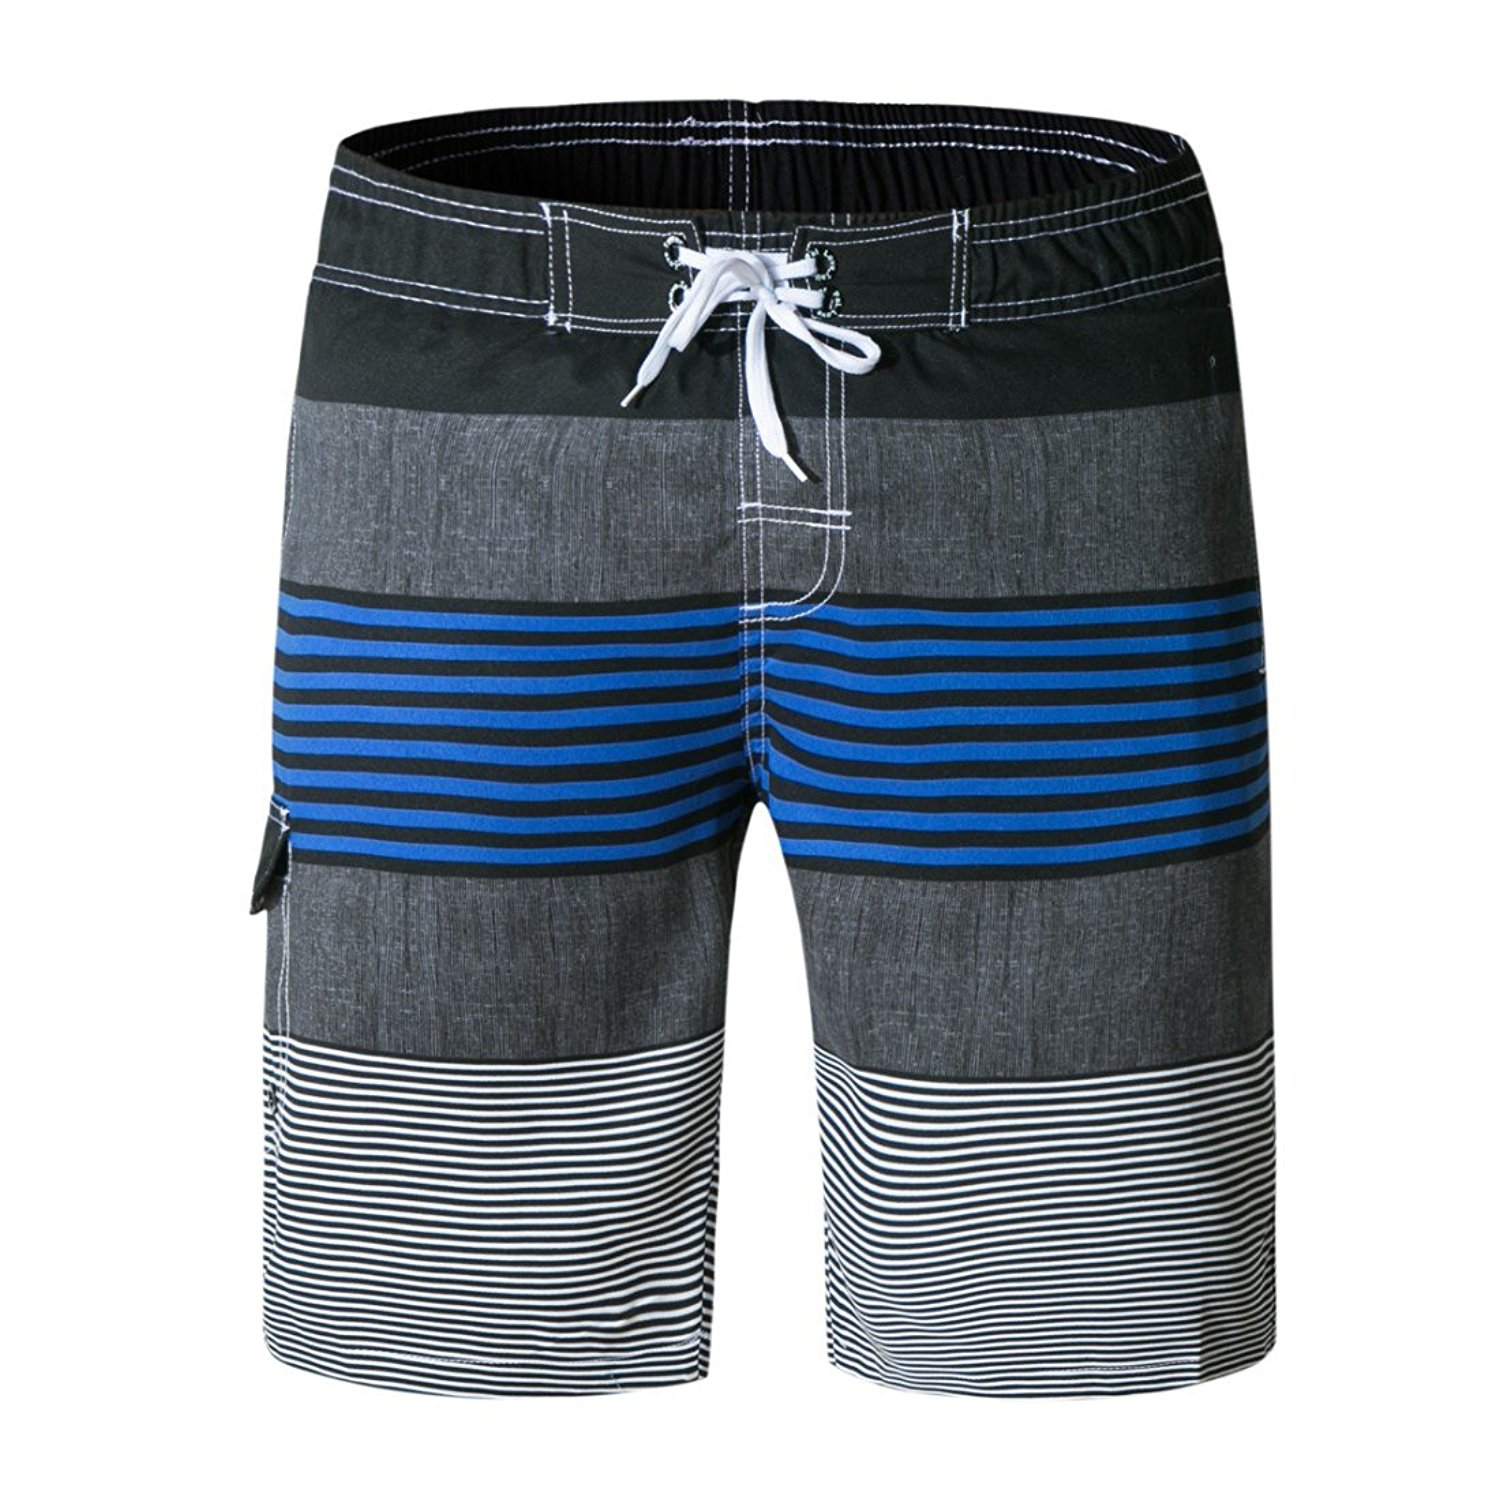 74ecfed5f1fdb Get Quotations · LJCCQ Men's Swim Trunks Stripe Board Shorts Long with Mesh Swim  Shorts Quick Dry Bathing Suits